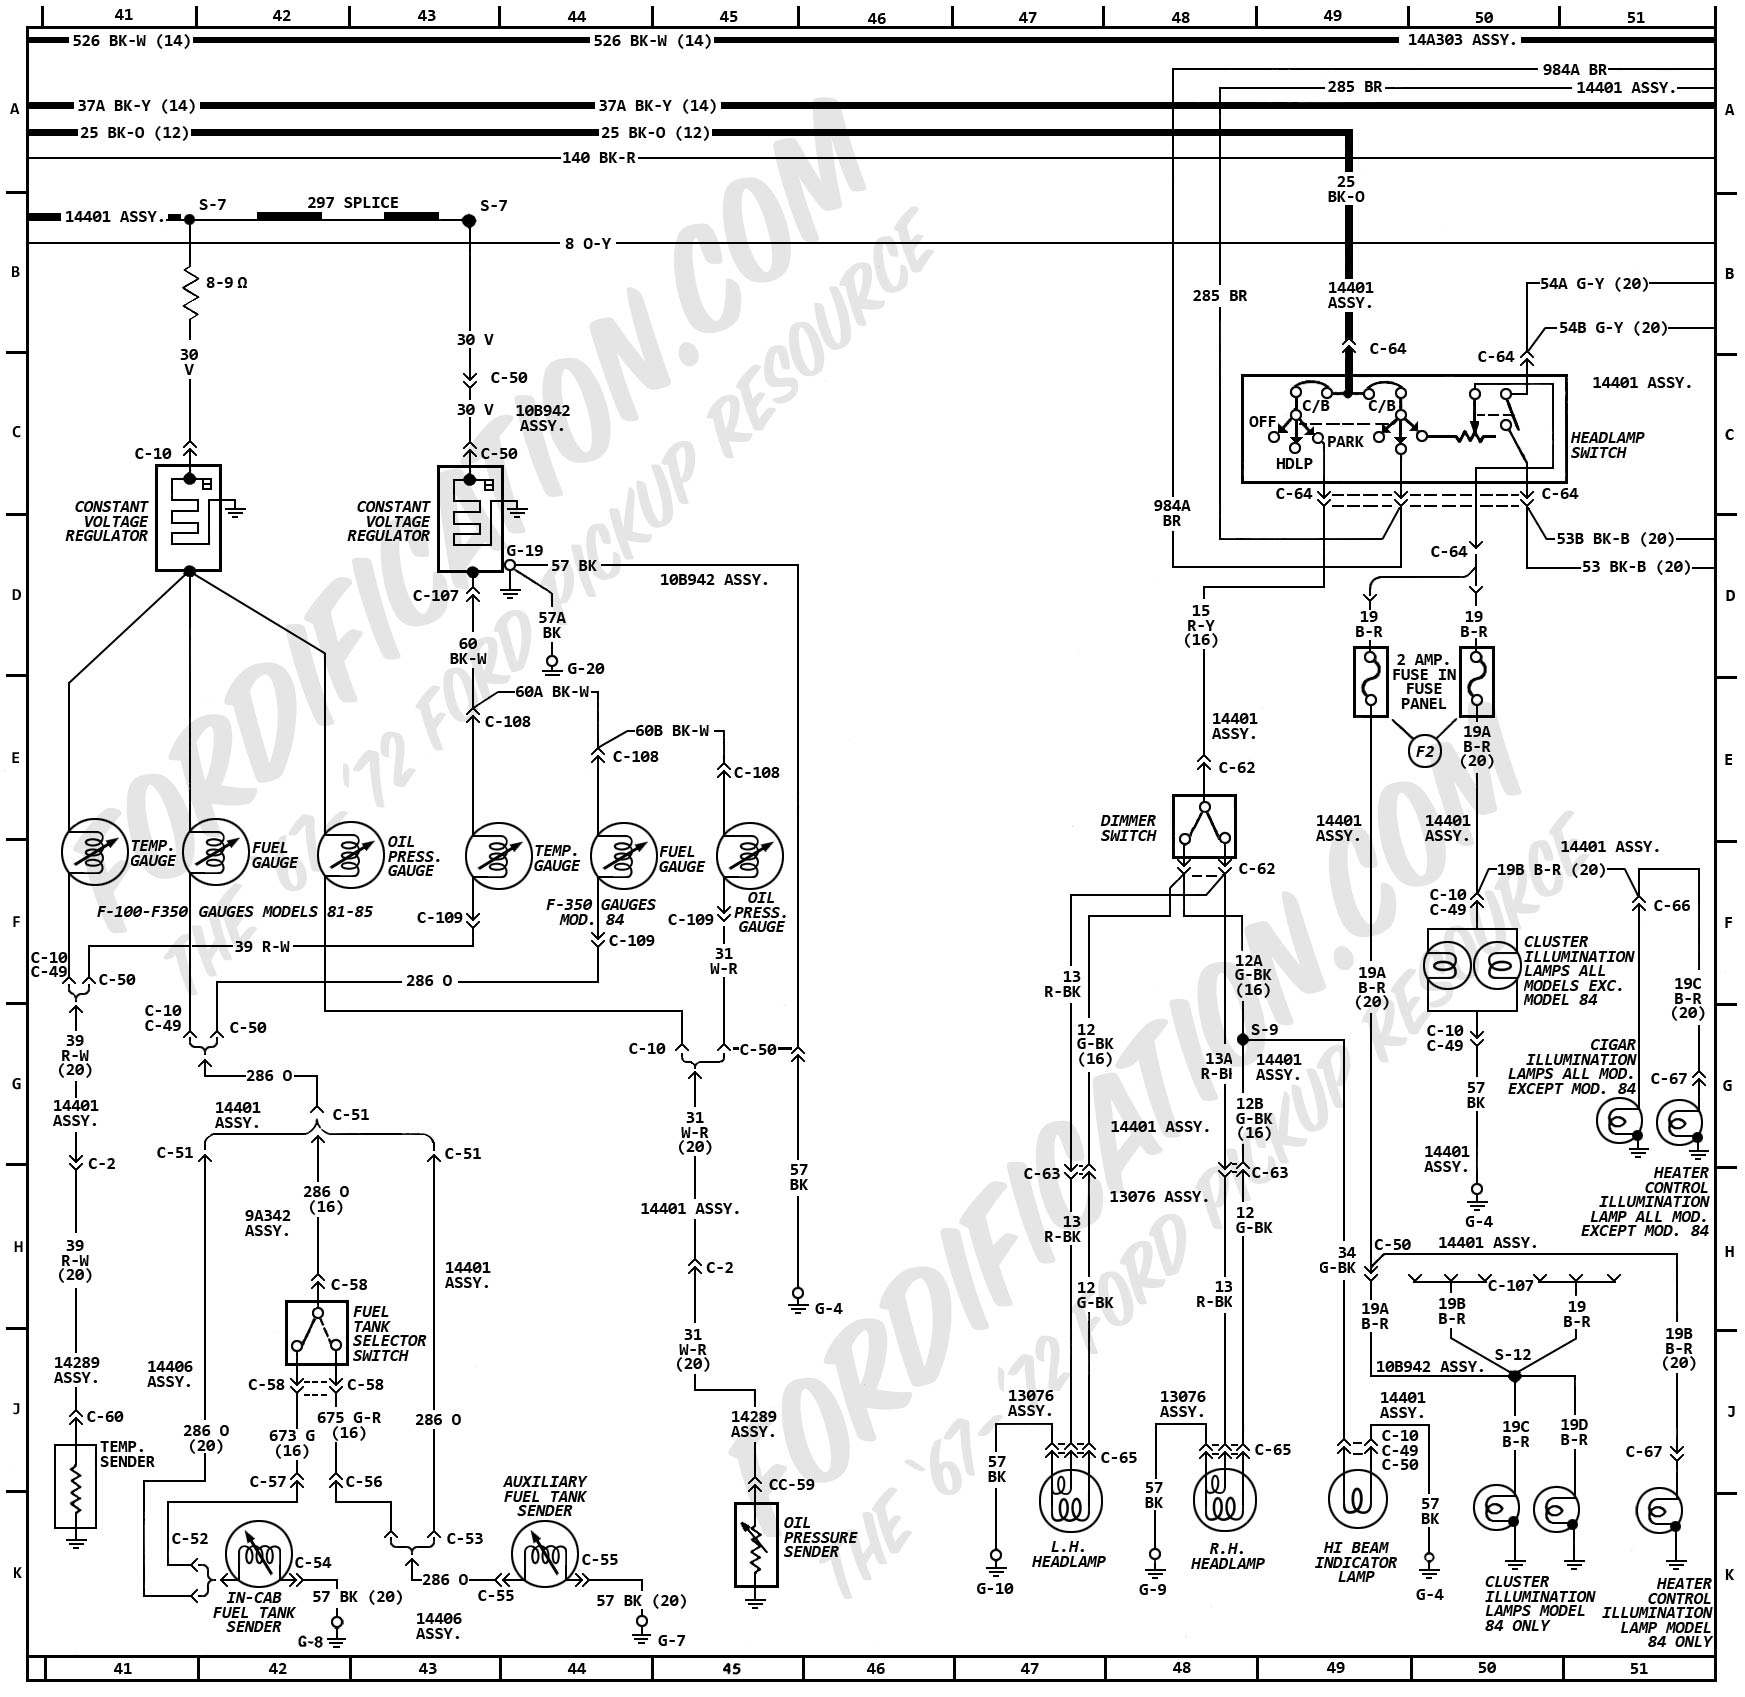 DIAGRAM] 1987 Ford L8000 Wiring Diagram FULL Version HD Quality Wiring  Diagram - IBENTO-LIVE.DOM-ADMIN.FRibento-live.dom-admin.fr